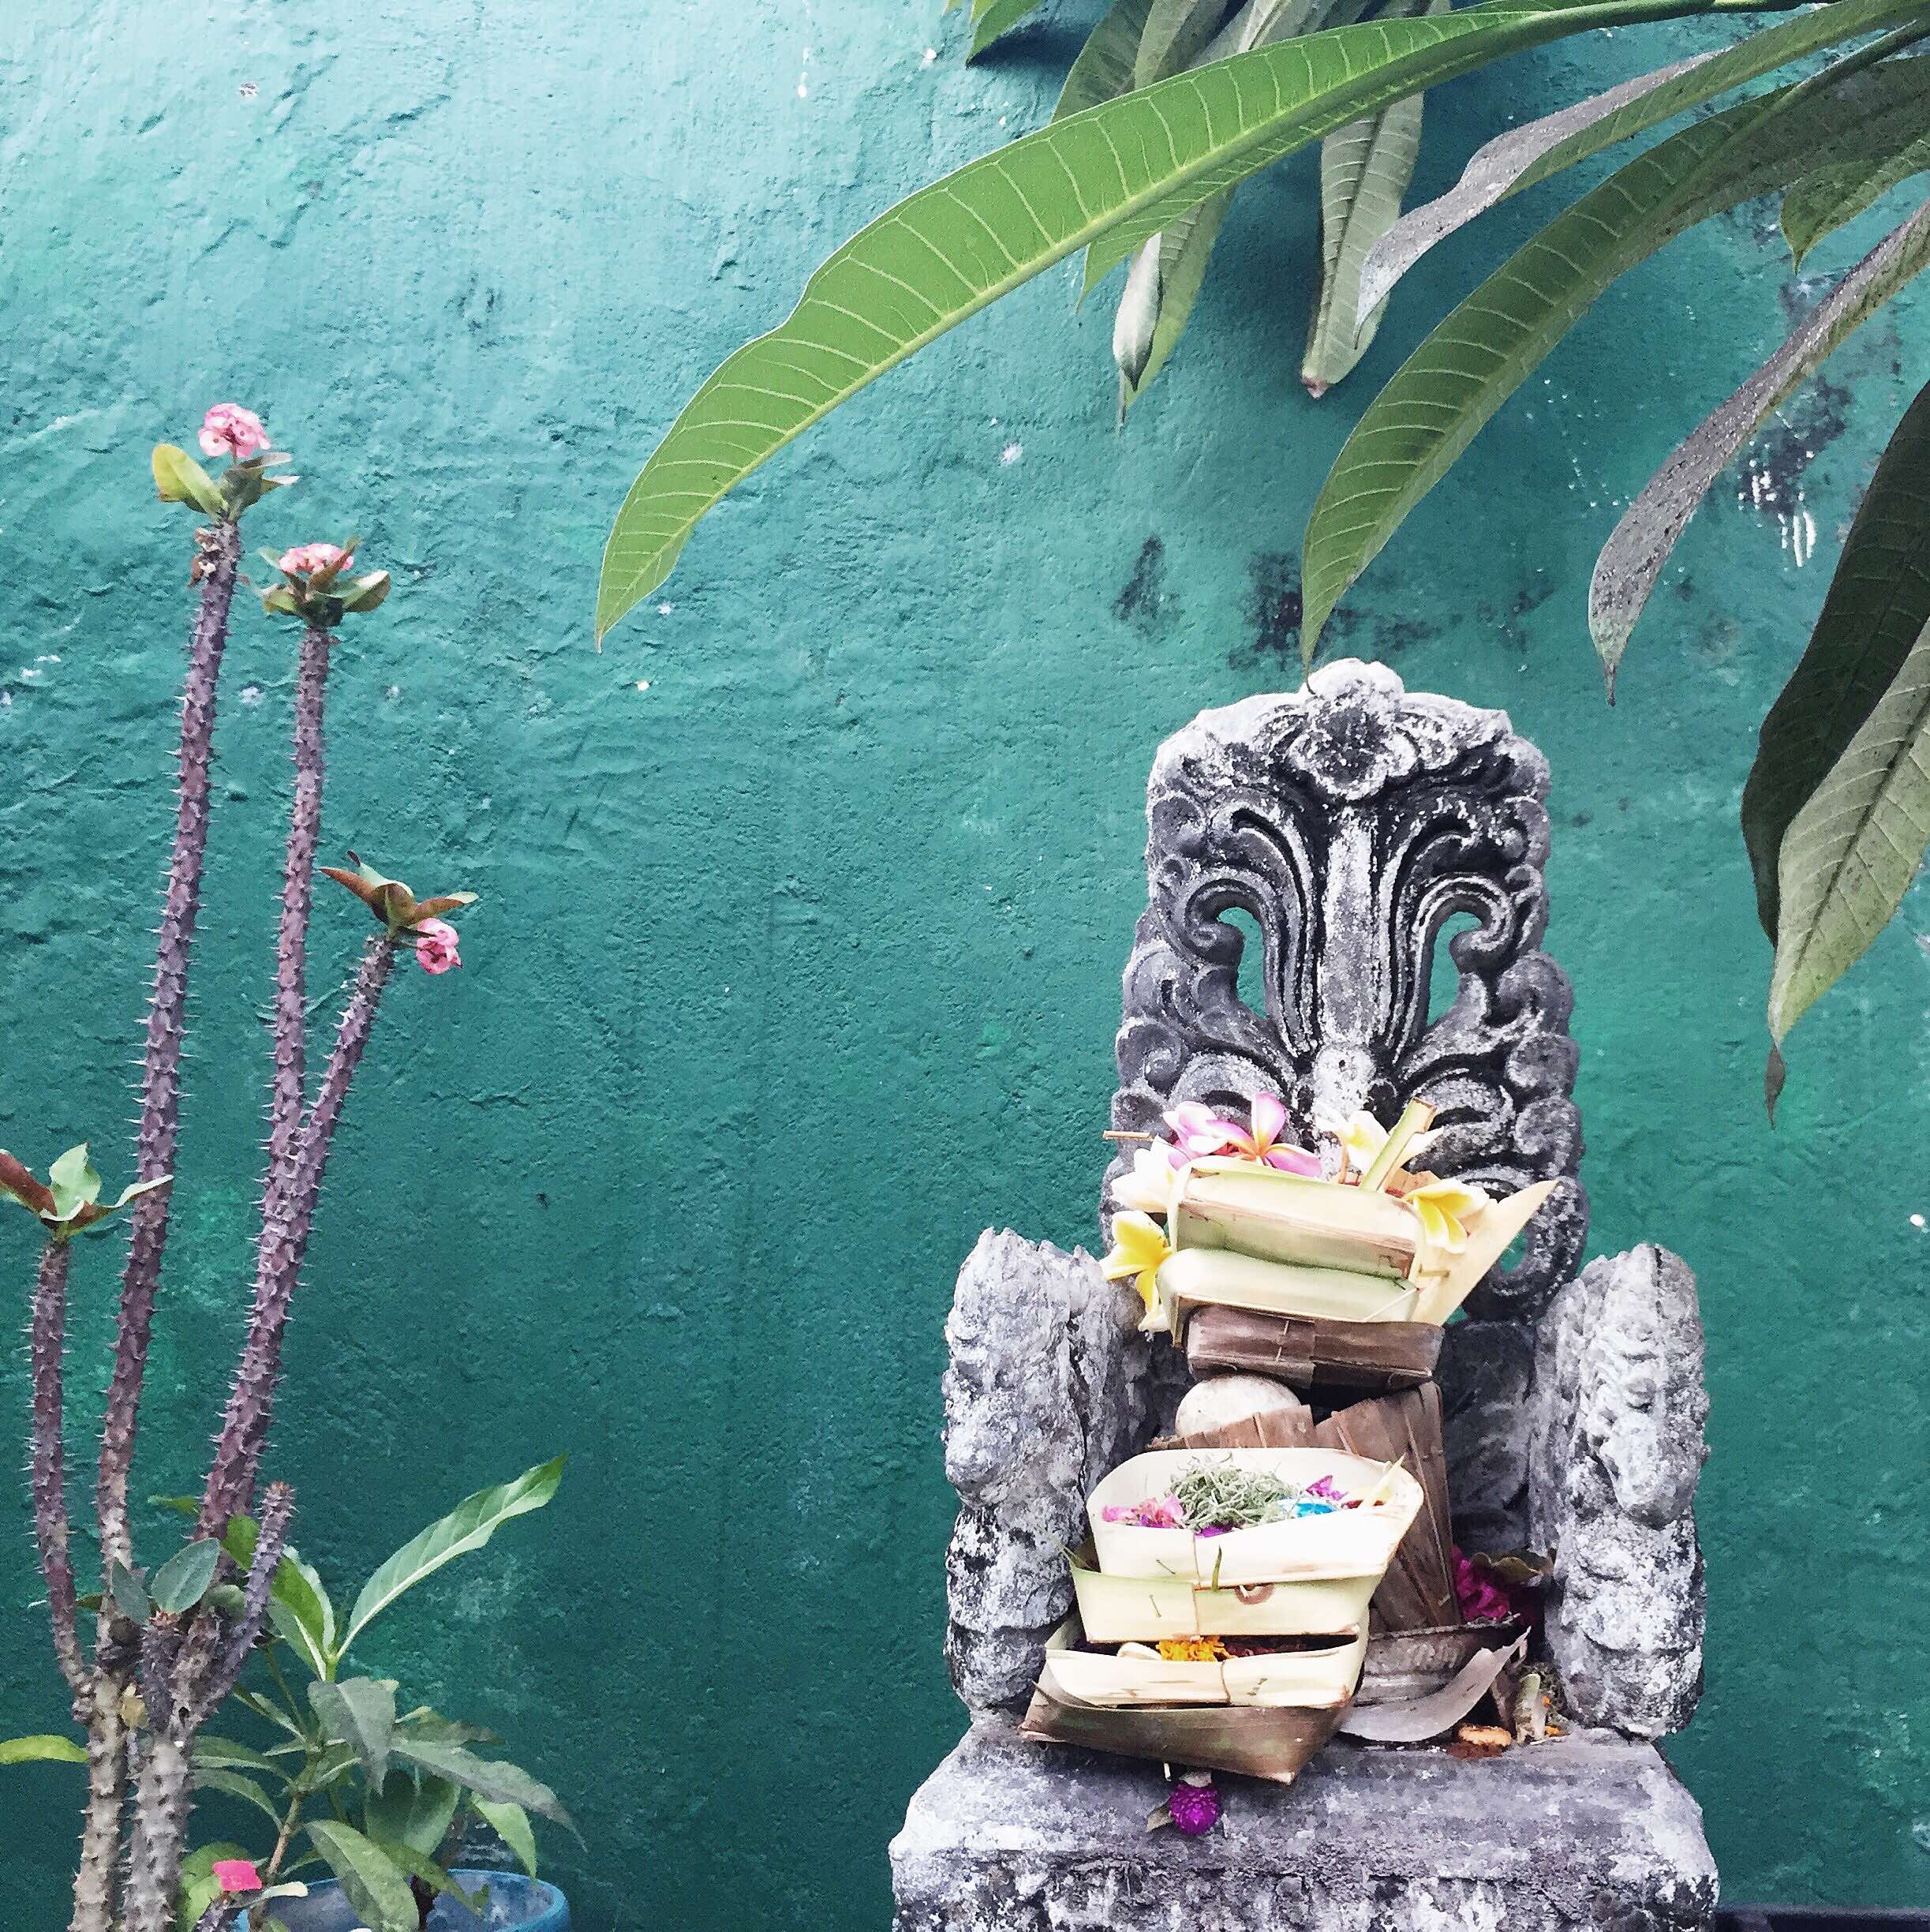 A day's worth of offerings, stacked high on a stone altar. (c) 2015 Gail Jessen, A Series of Adventures